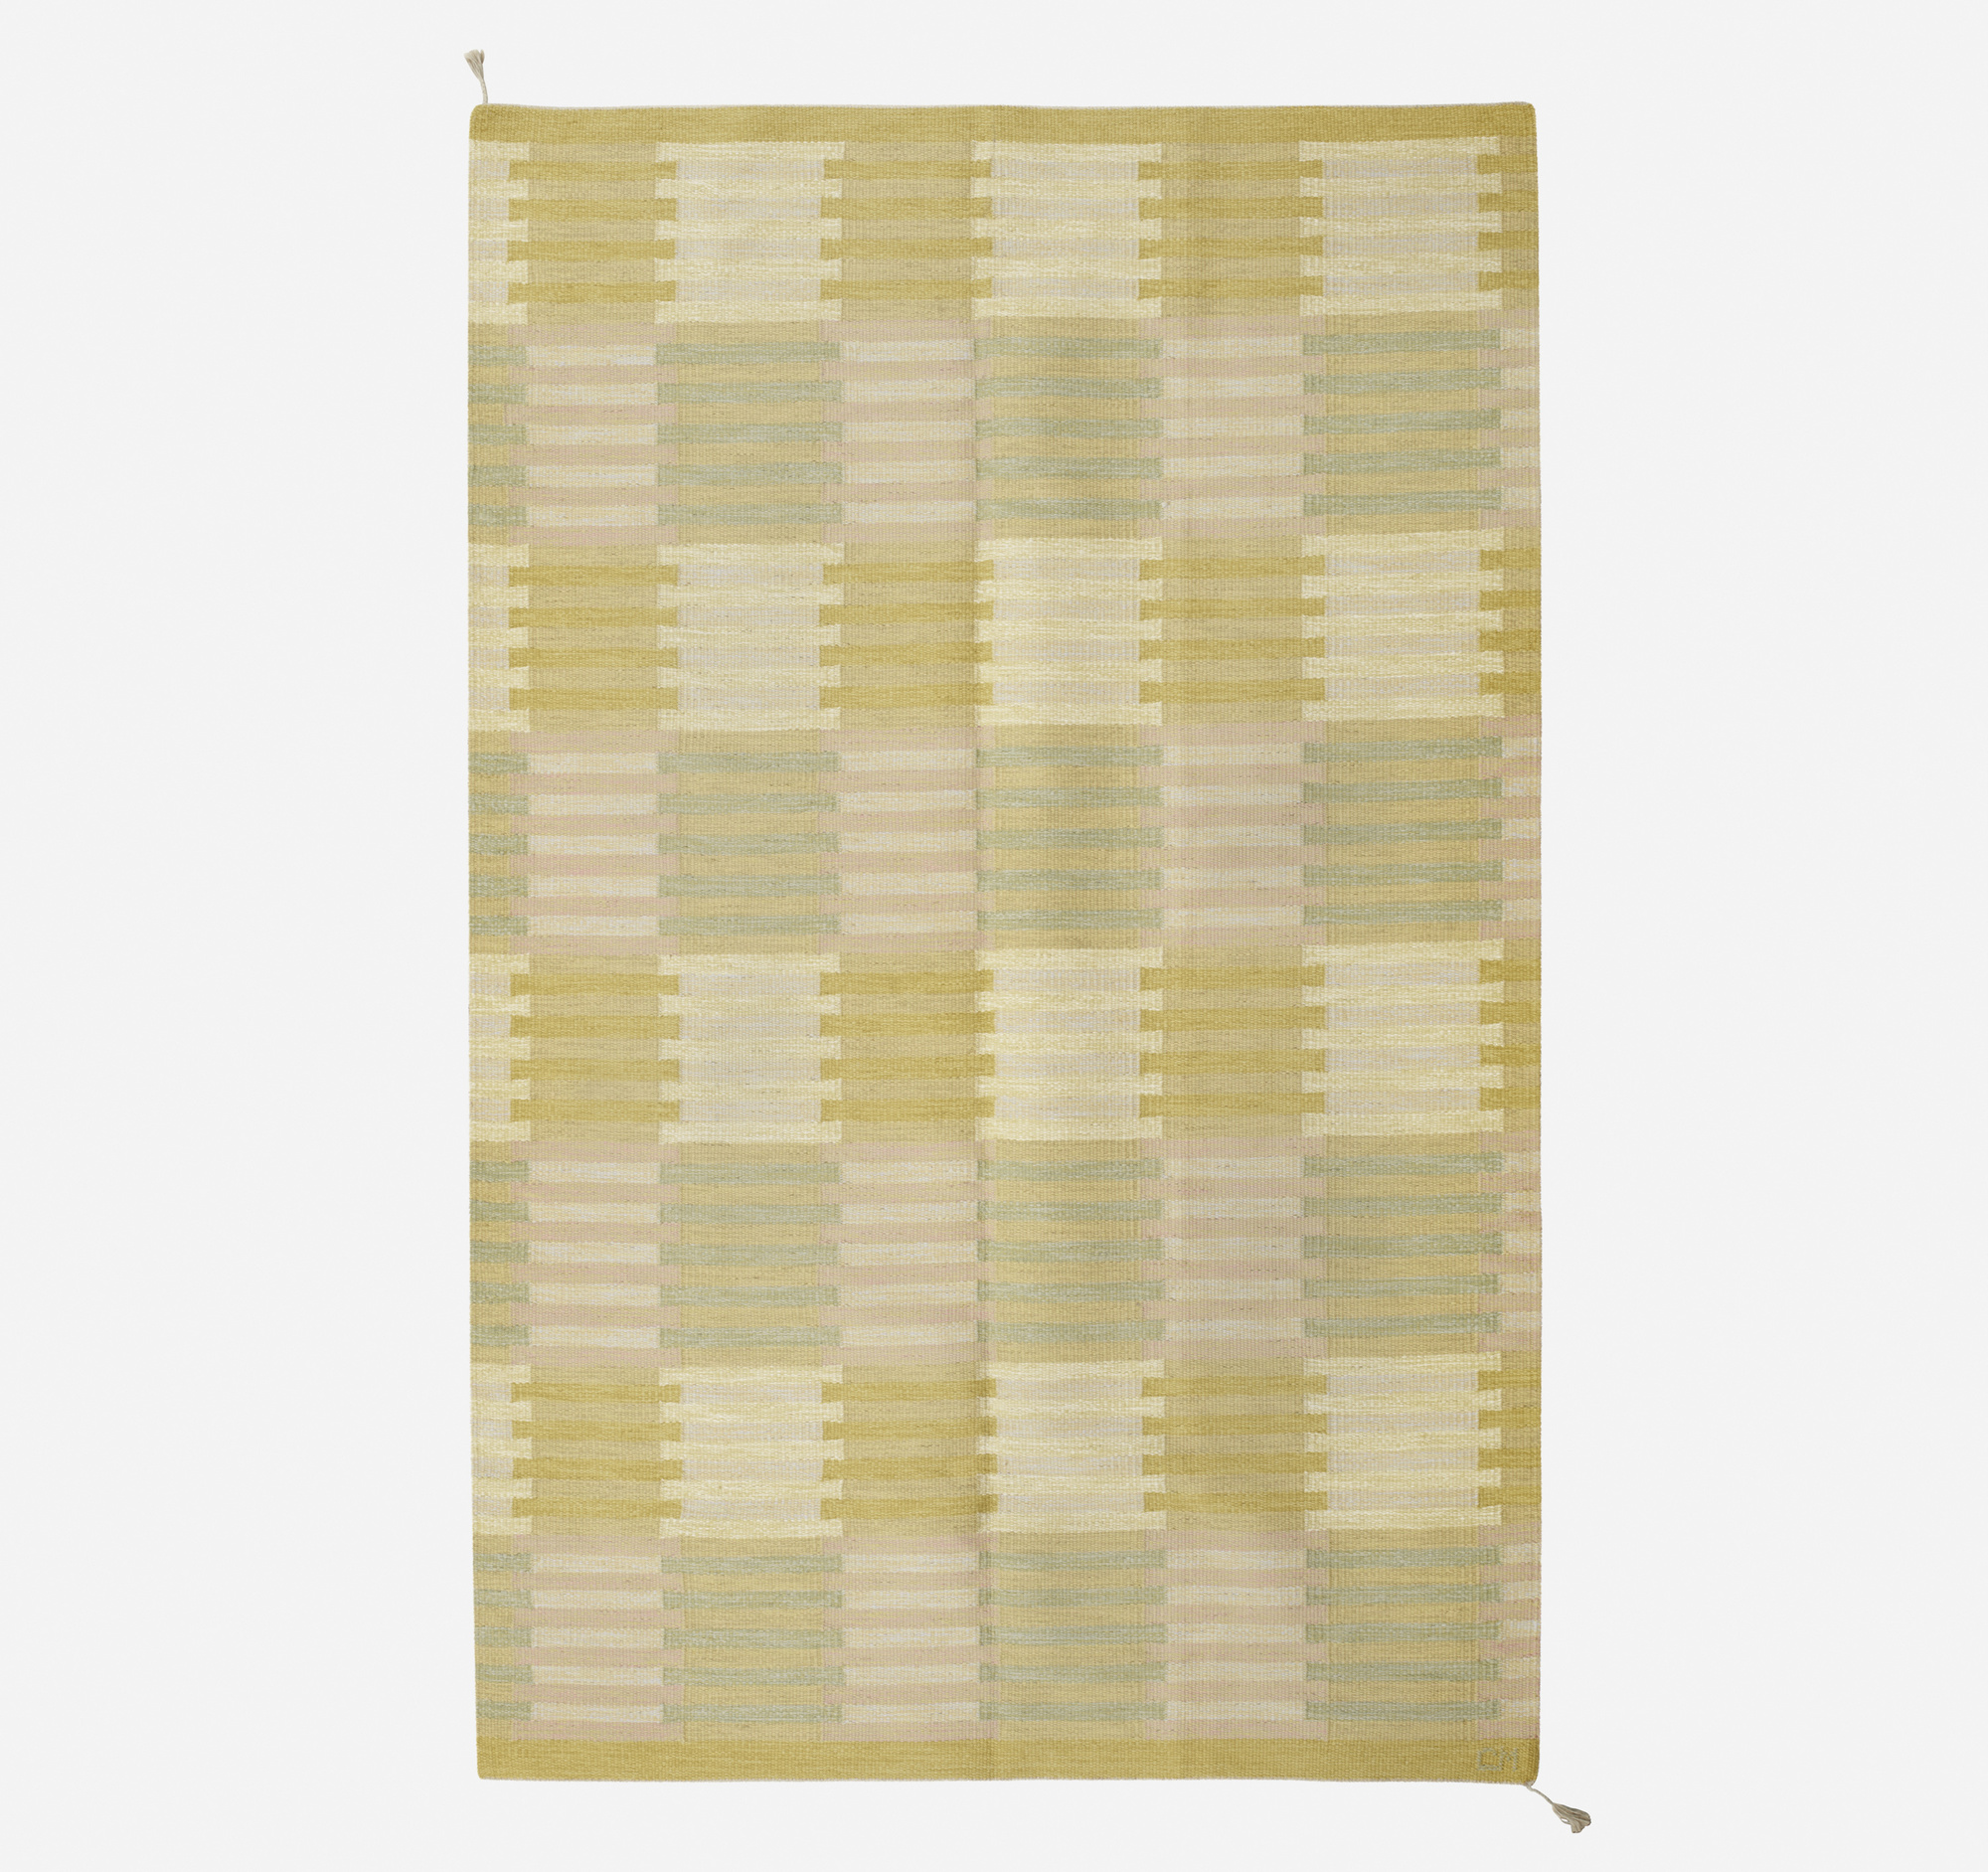 244: Carl Malmsten / flatweave carpet (1 of 2)